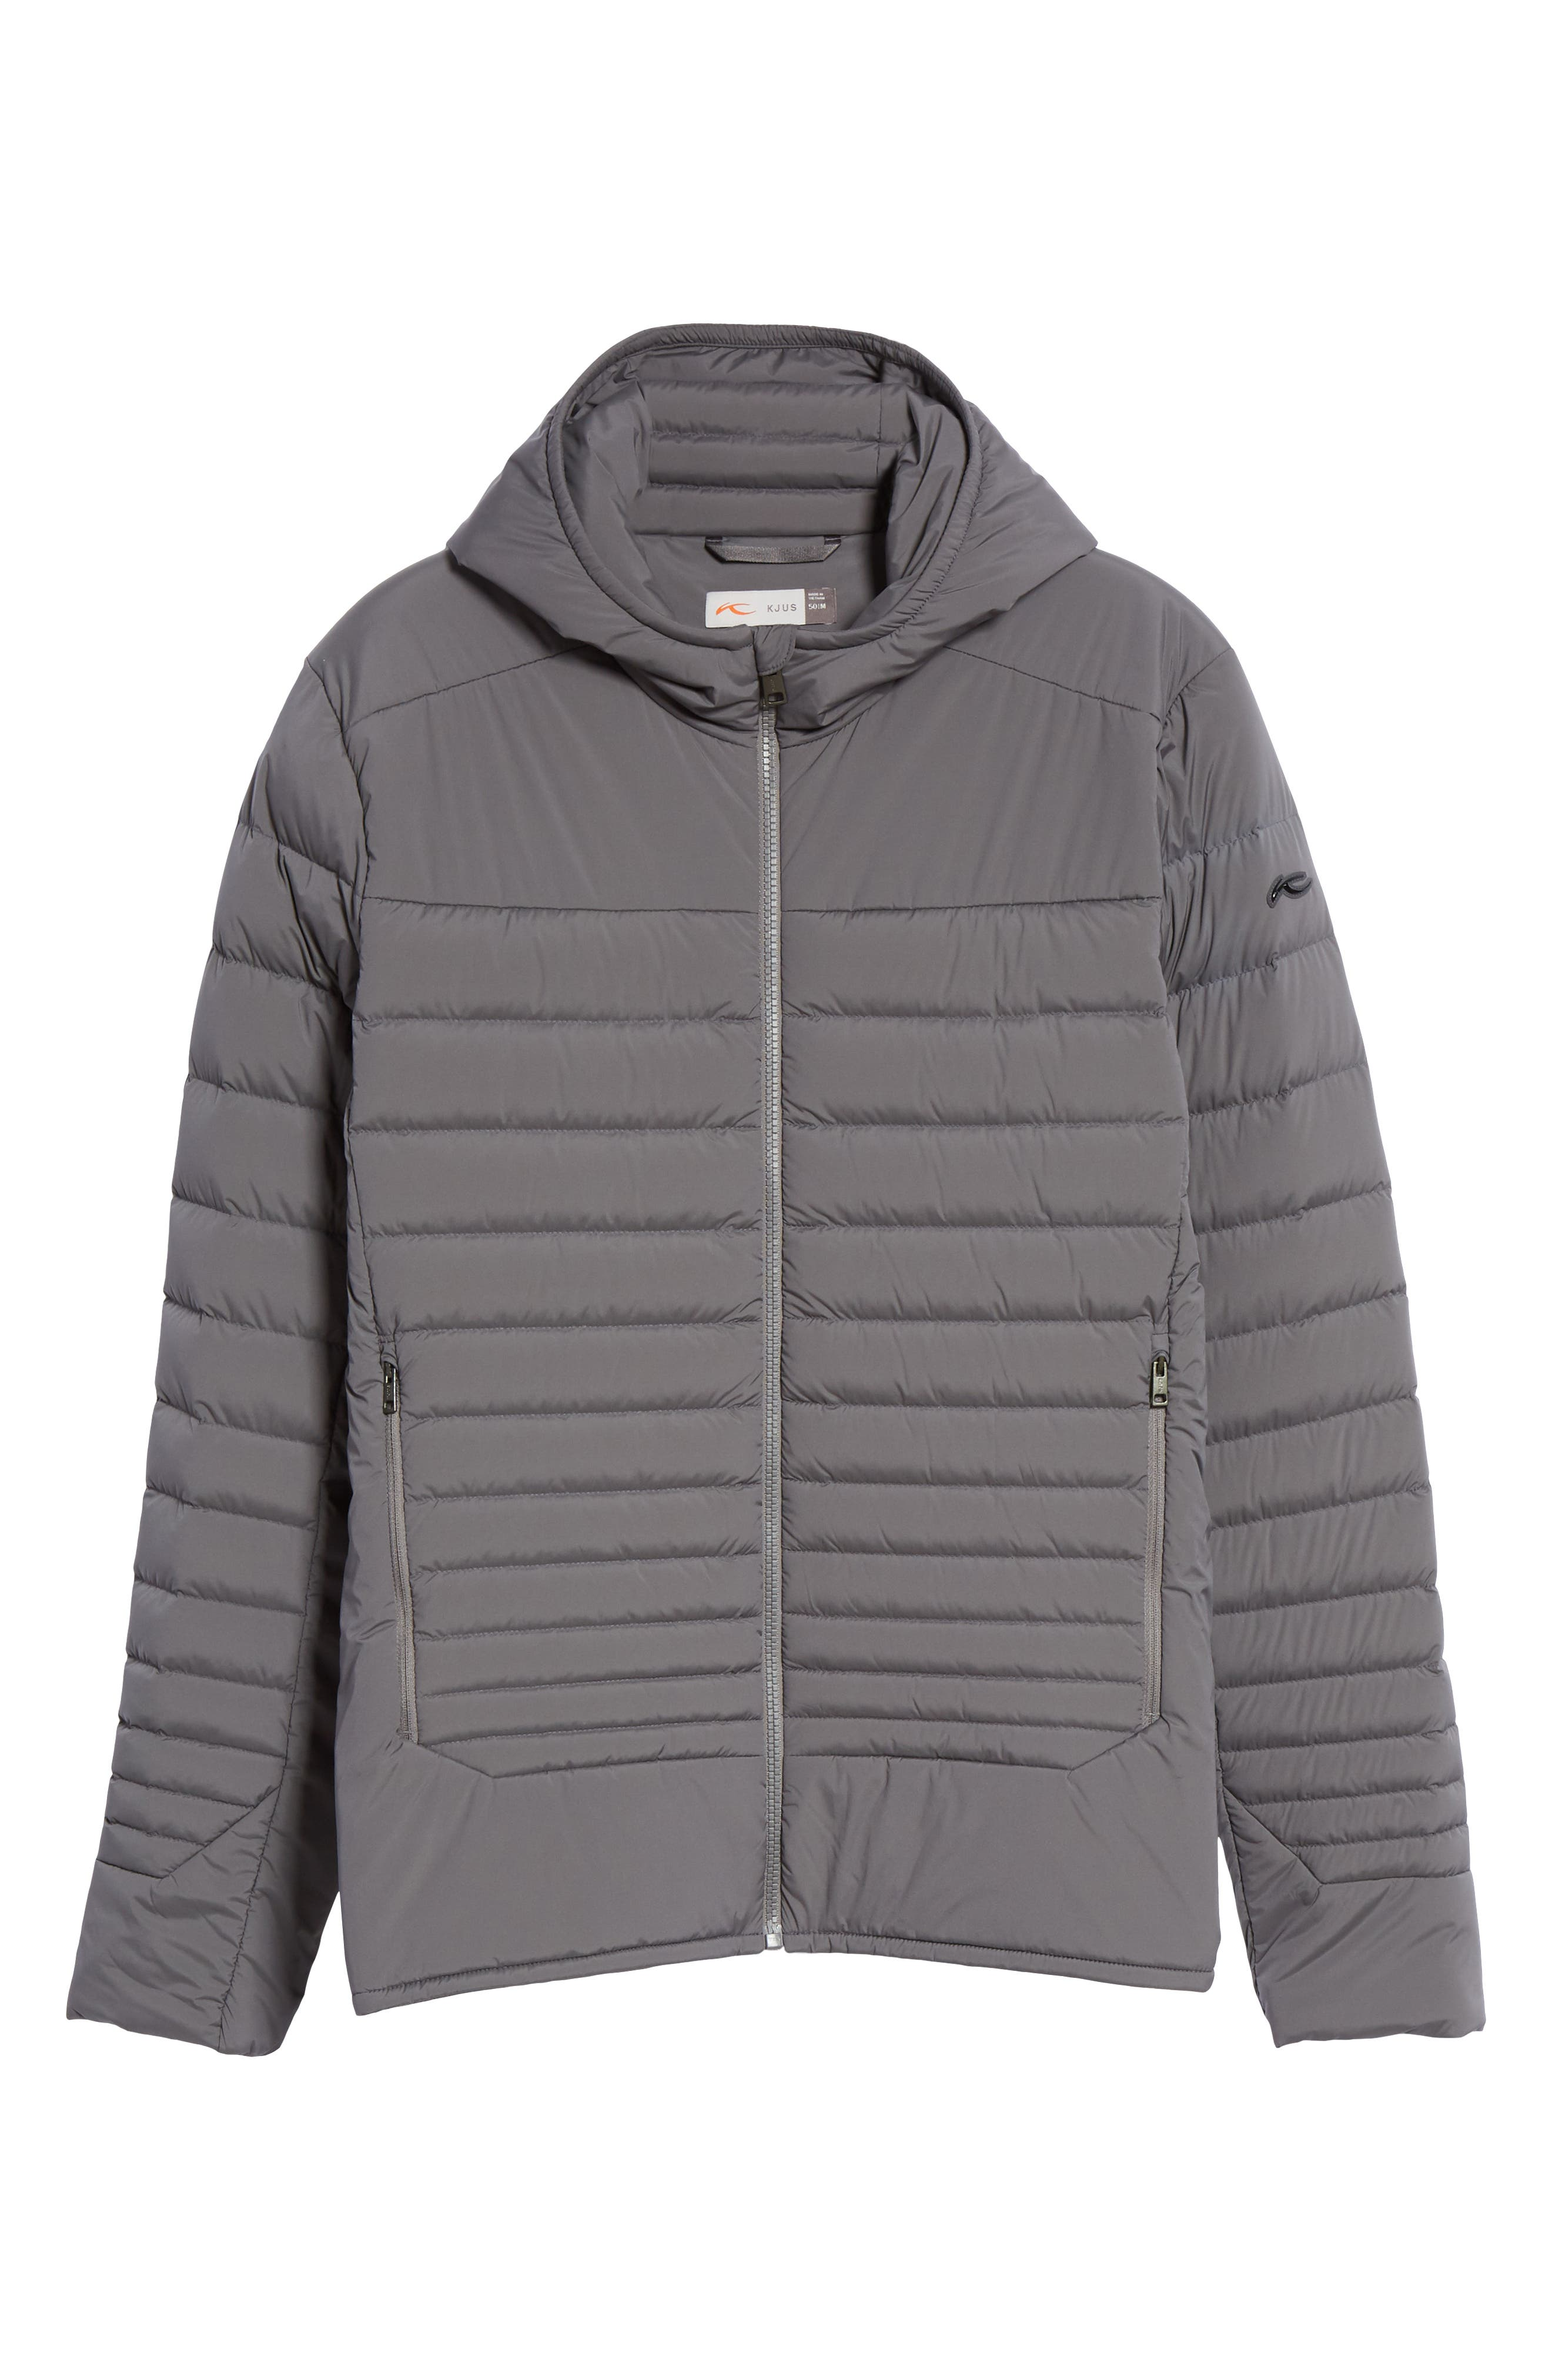 Blackcomb Stretch Hooded Men's Down Fill Jacket, Main, color, STEEL GREY